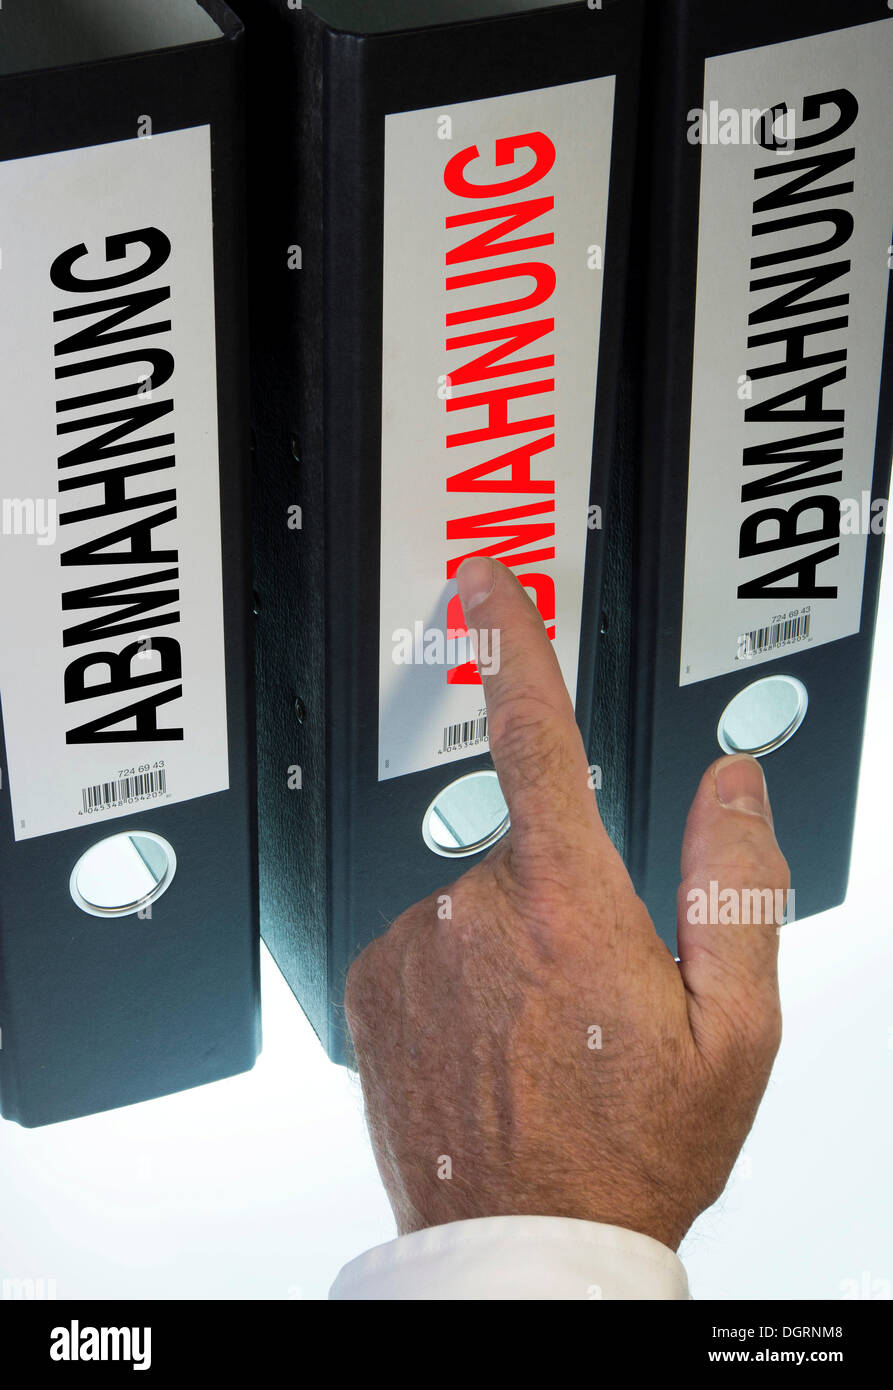 Hand pointing to a ring binder labelled 'ABMAHNUNG', German for 'warning letter' - Stock Image